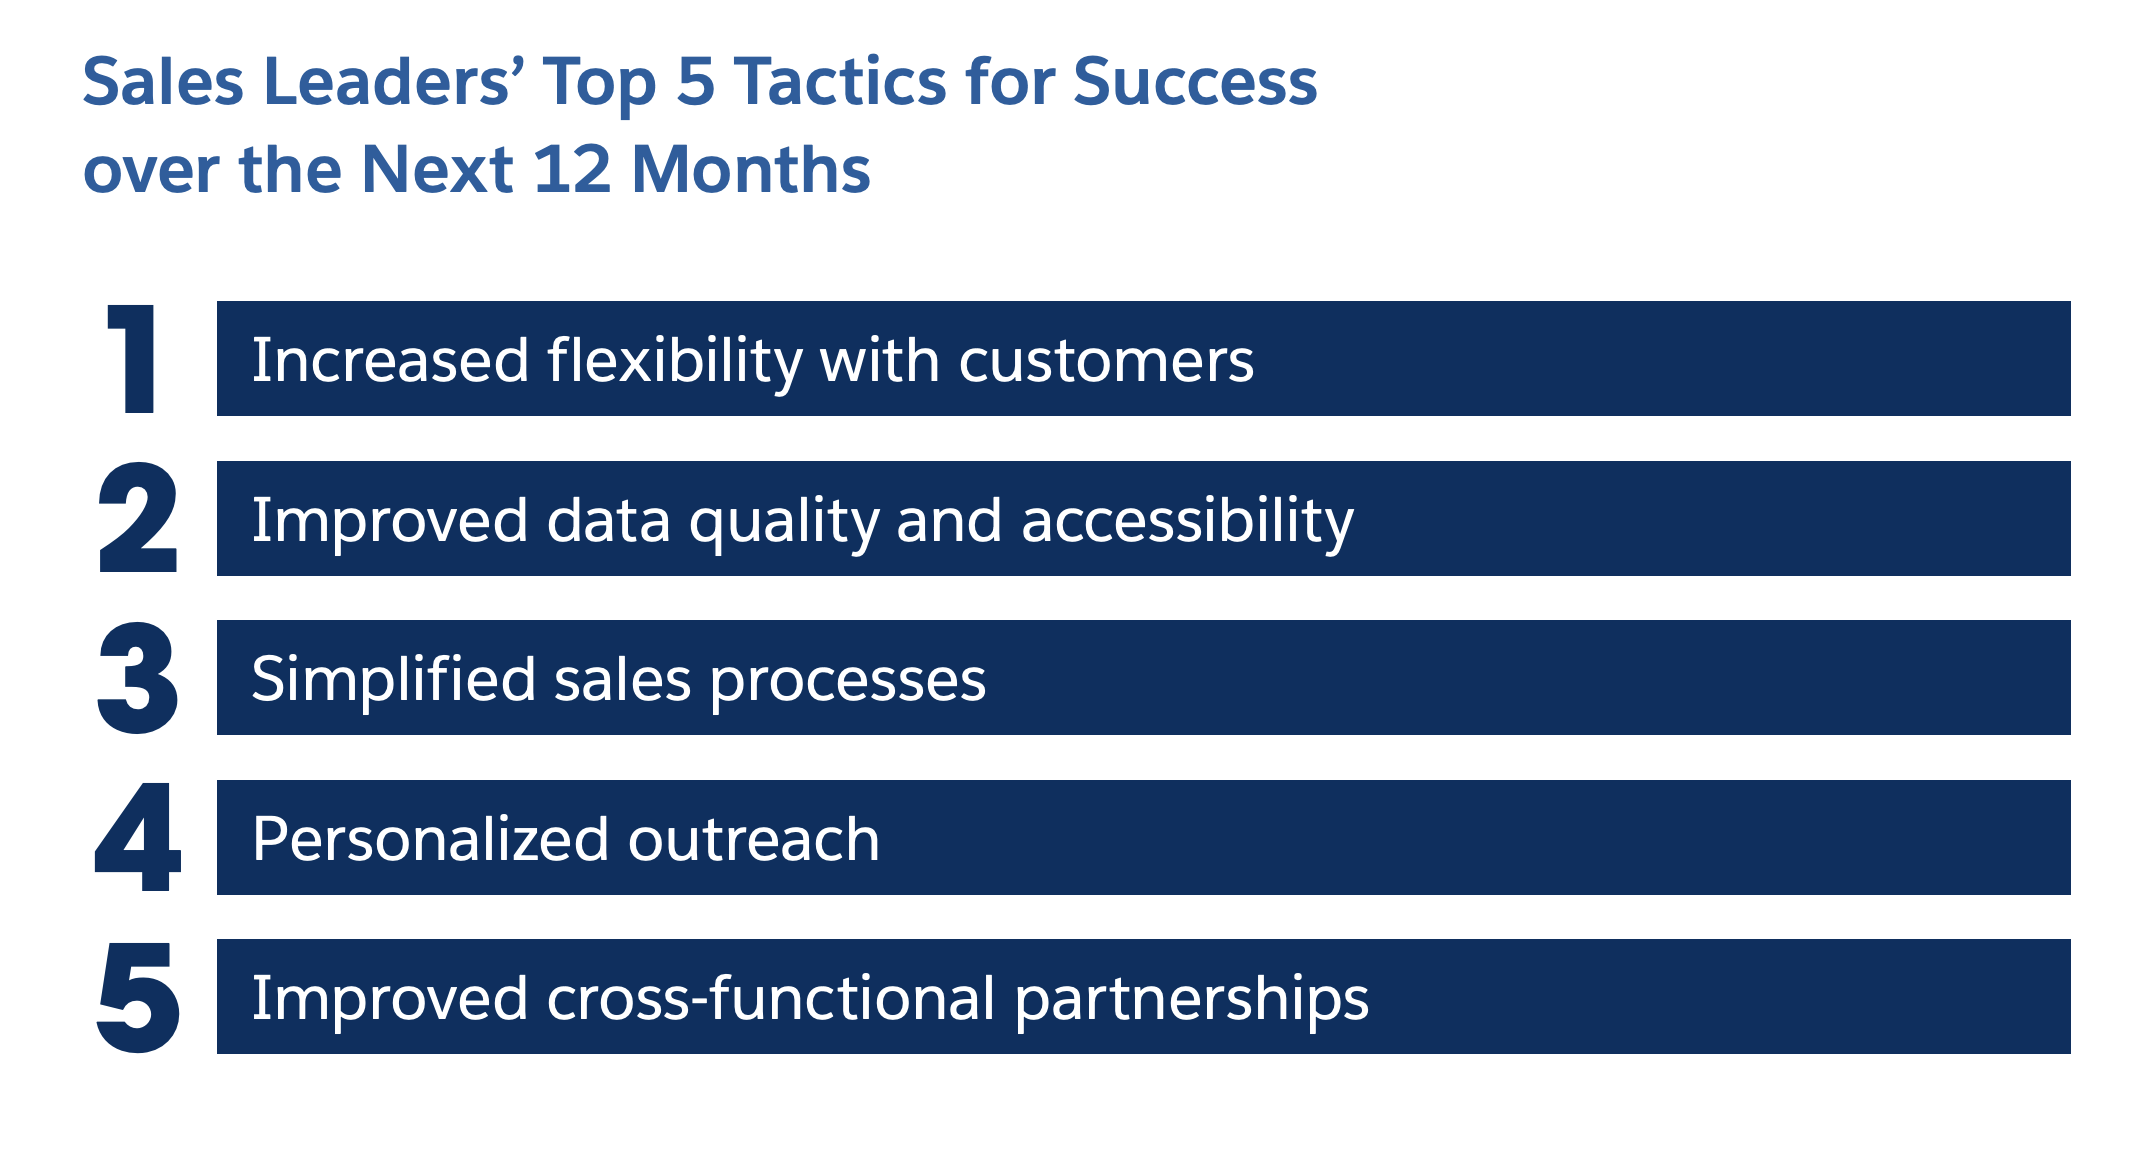 sales leaders' top 5 tactics for success over the next 12 months